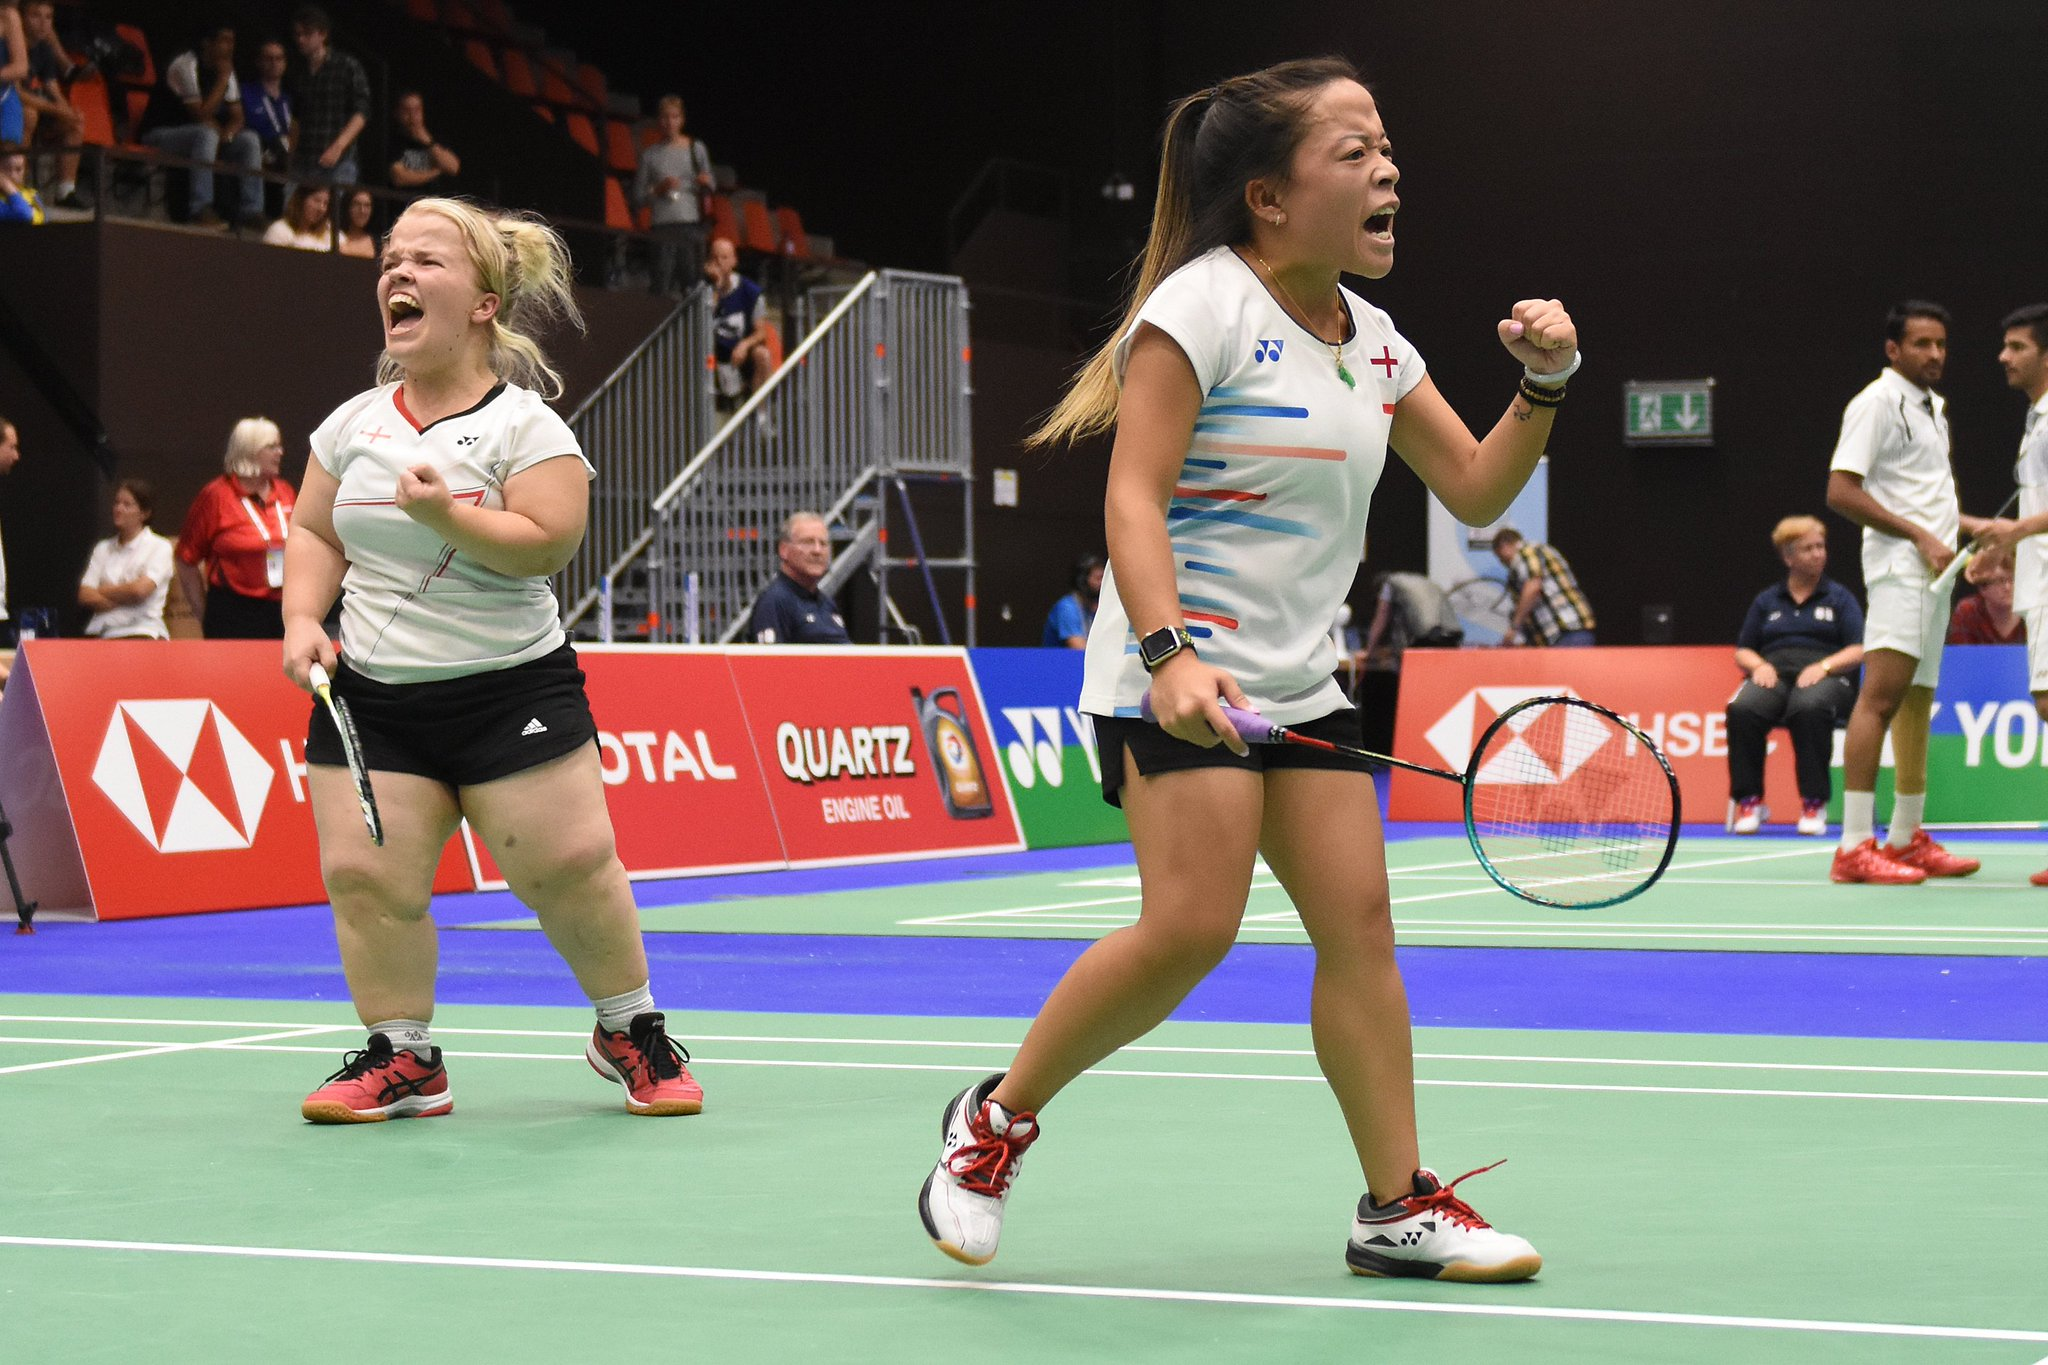 What a performance from @rach_choong and @becky_badminton in Basel to claim @BadmintonEnglnd's first gold medal of the World Championships! 🥇  The pair defeated Canada's Carmen Giuliana Poveda Flores and Katherine Valli of the USA 27-25 21-17 in the final https://t.co/JR0gfN5HUK